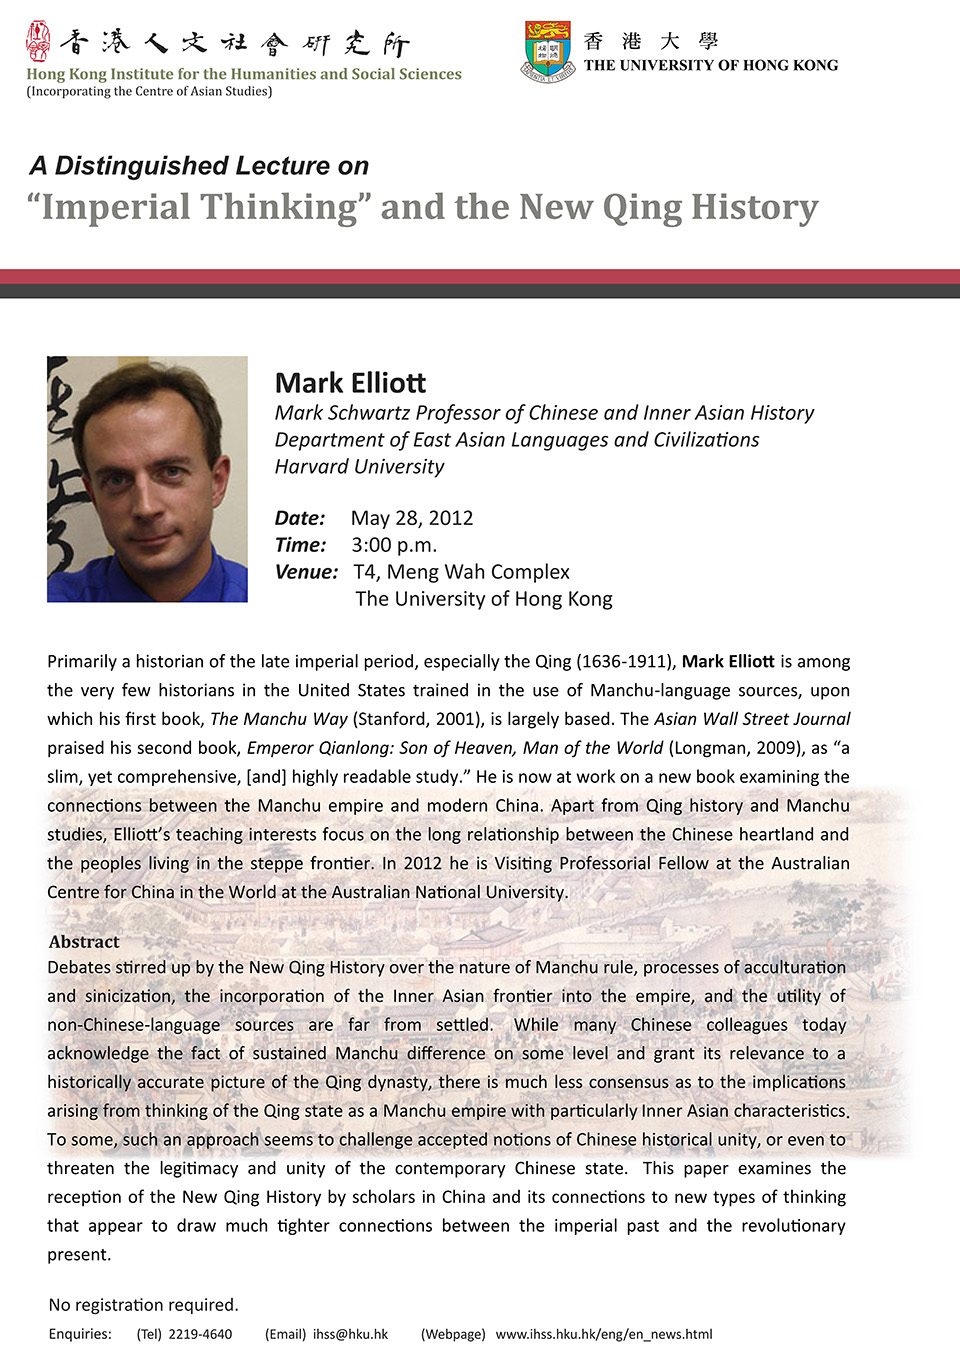 "Distinguished Lecture on ""Imperial Thinking and the New Qing History"" by Professor Mark Elliott (May 28, 2012)"